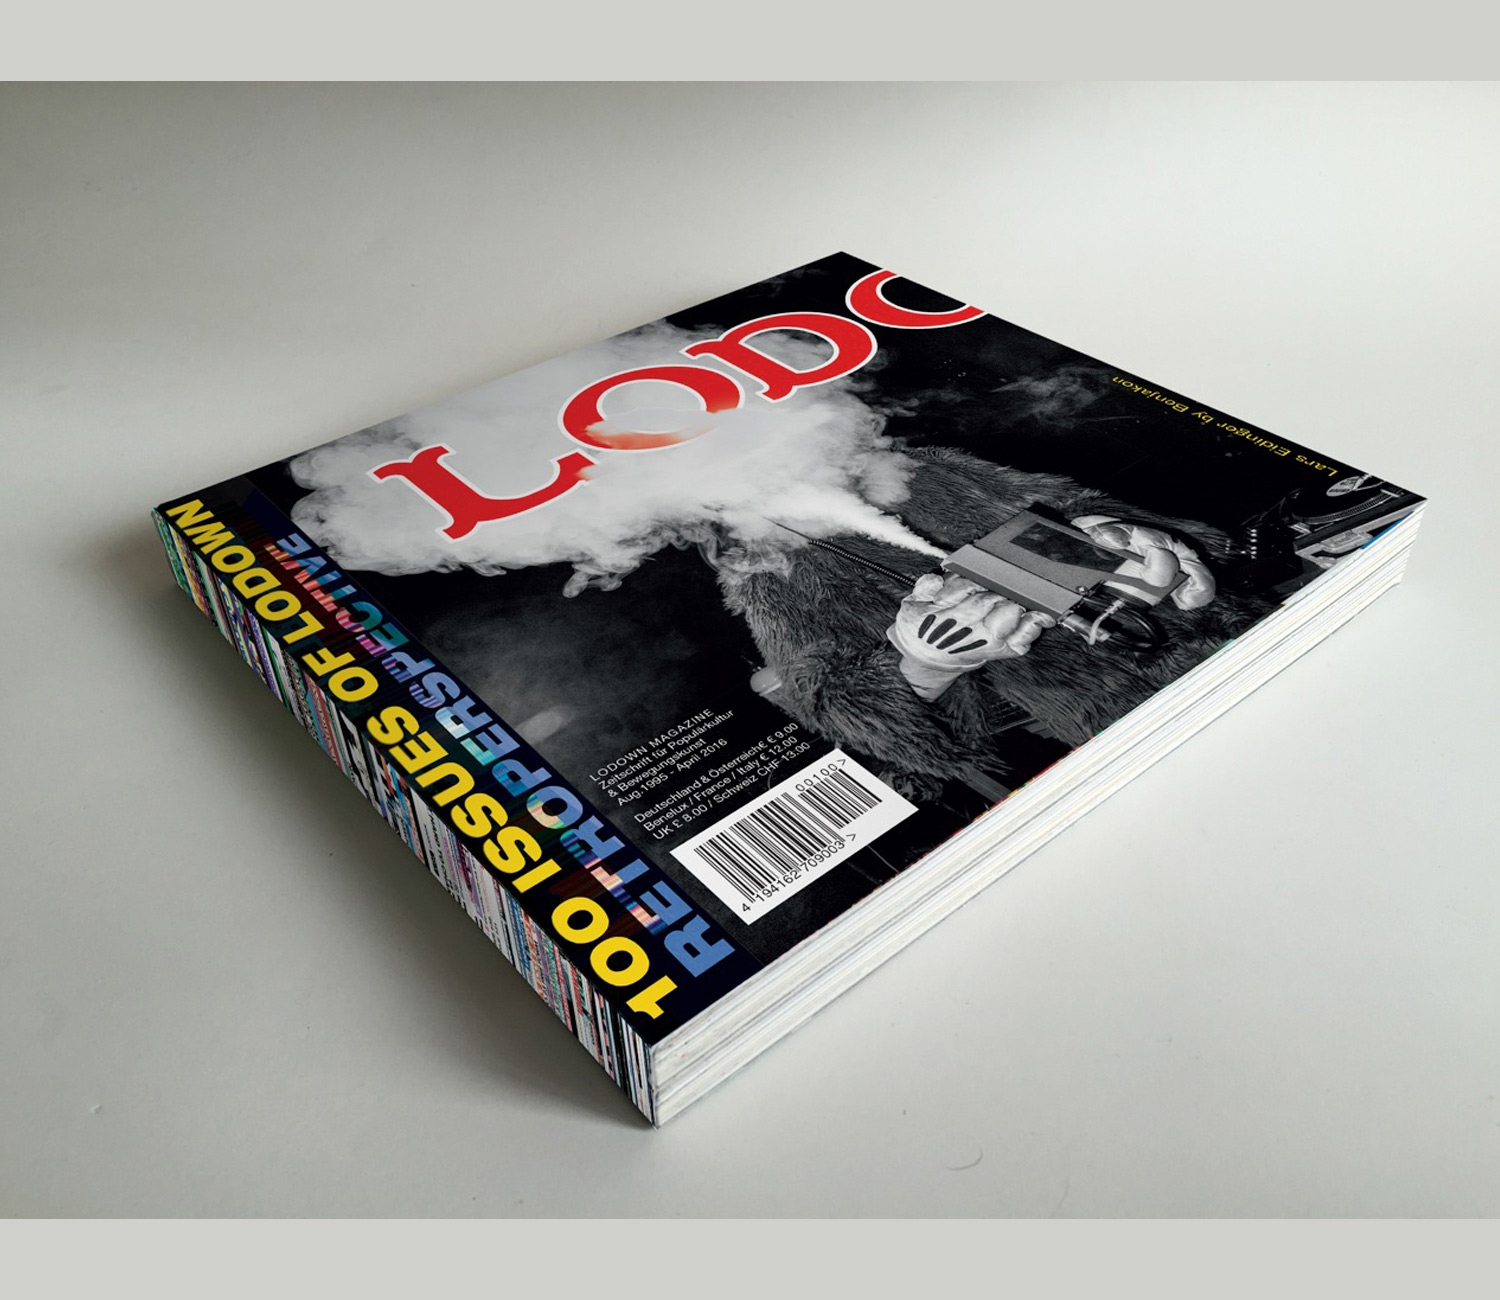 ISSUE #100